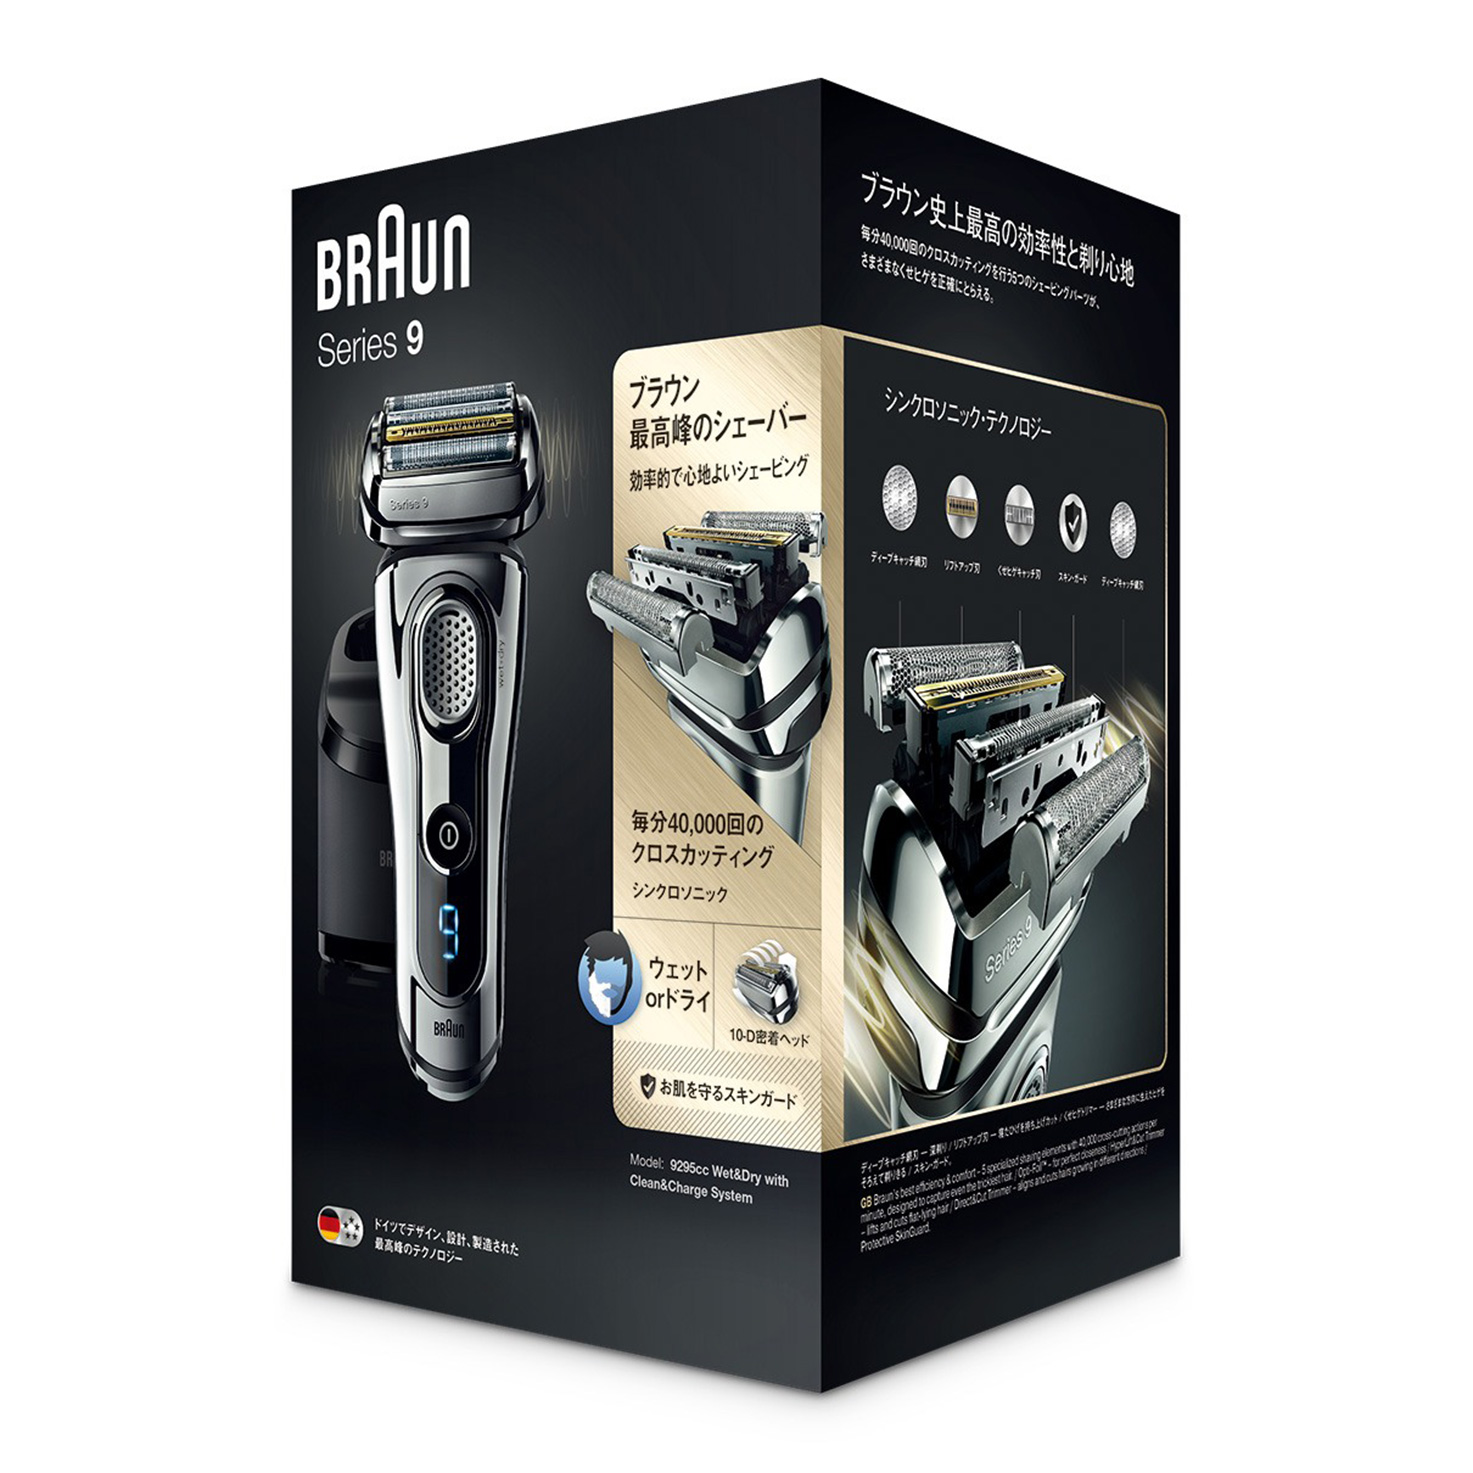 Braun Series 9 chrome electric shaver packaging